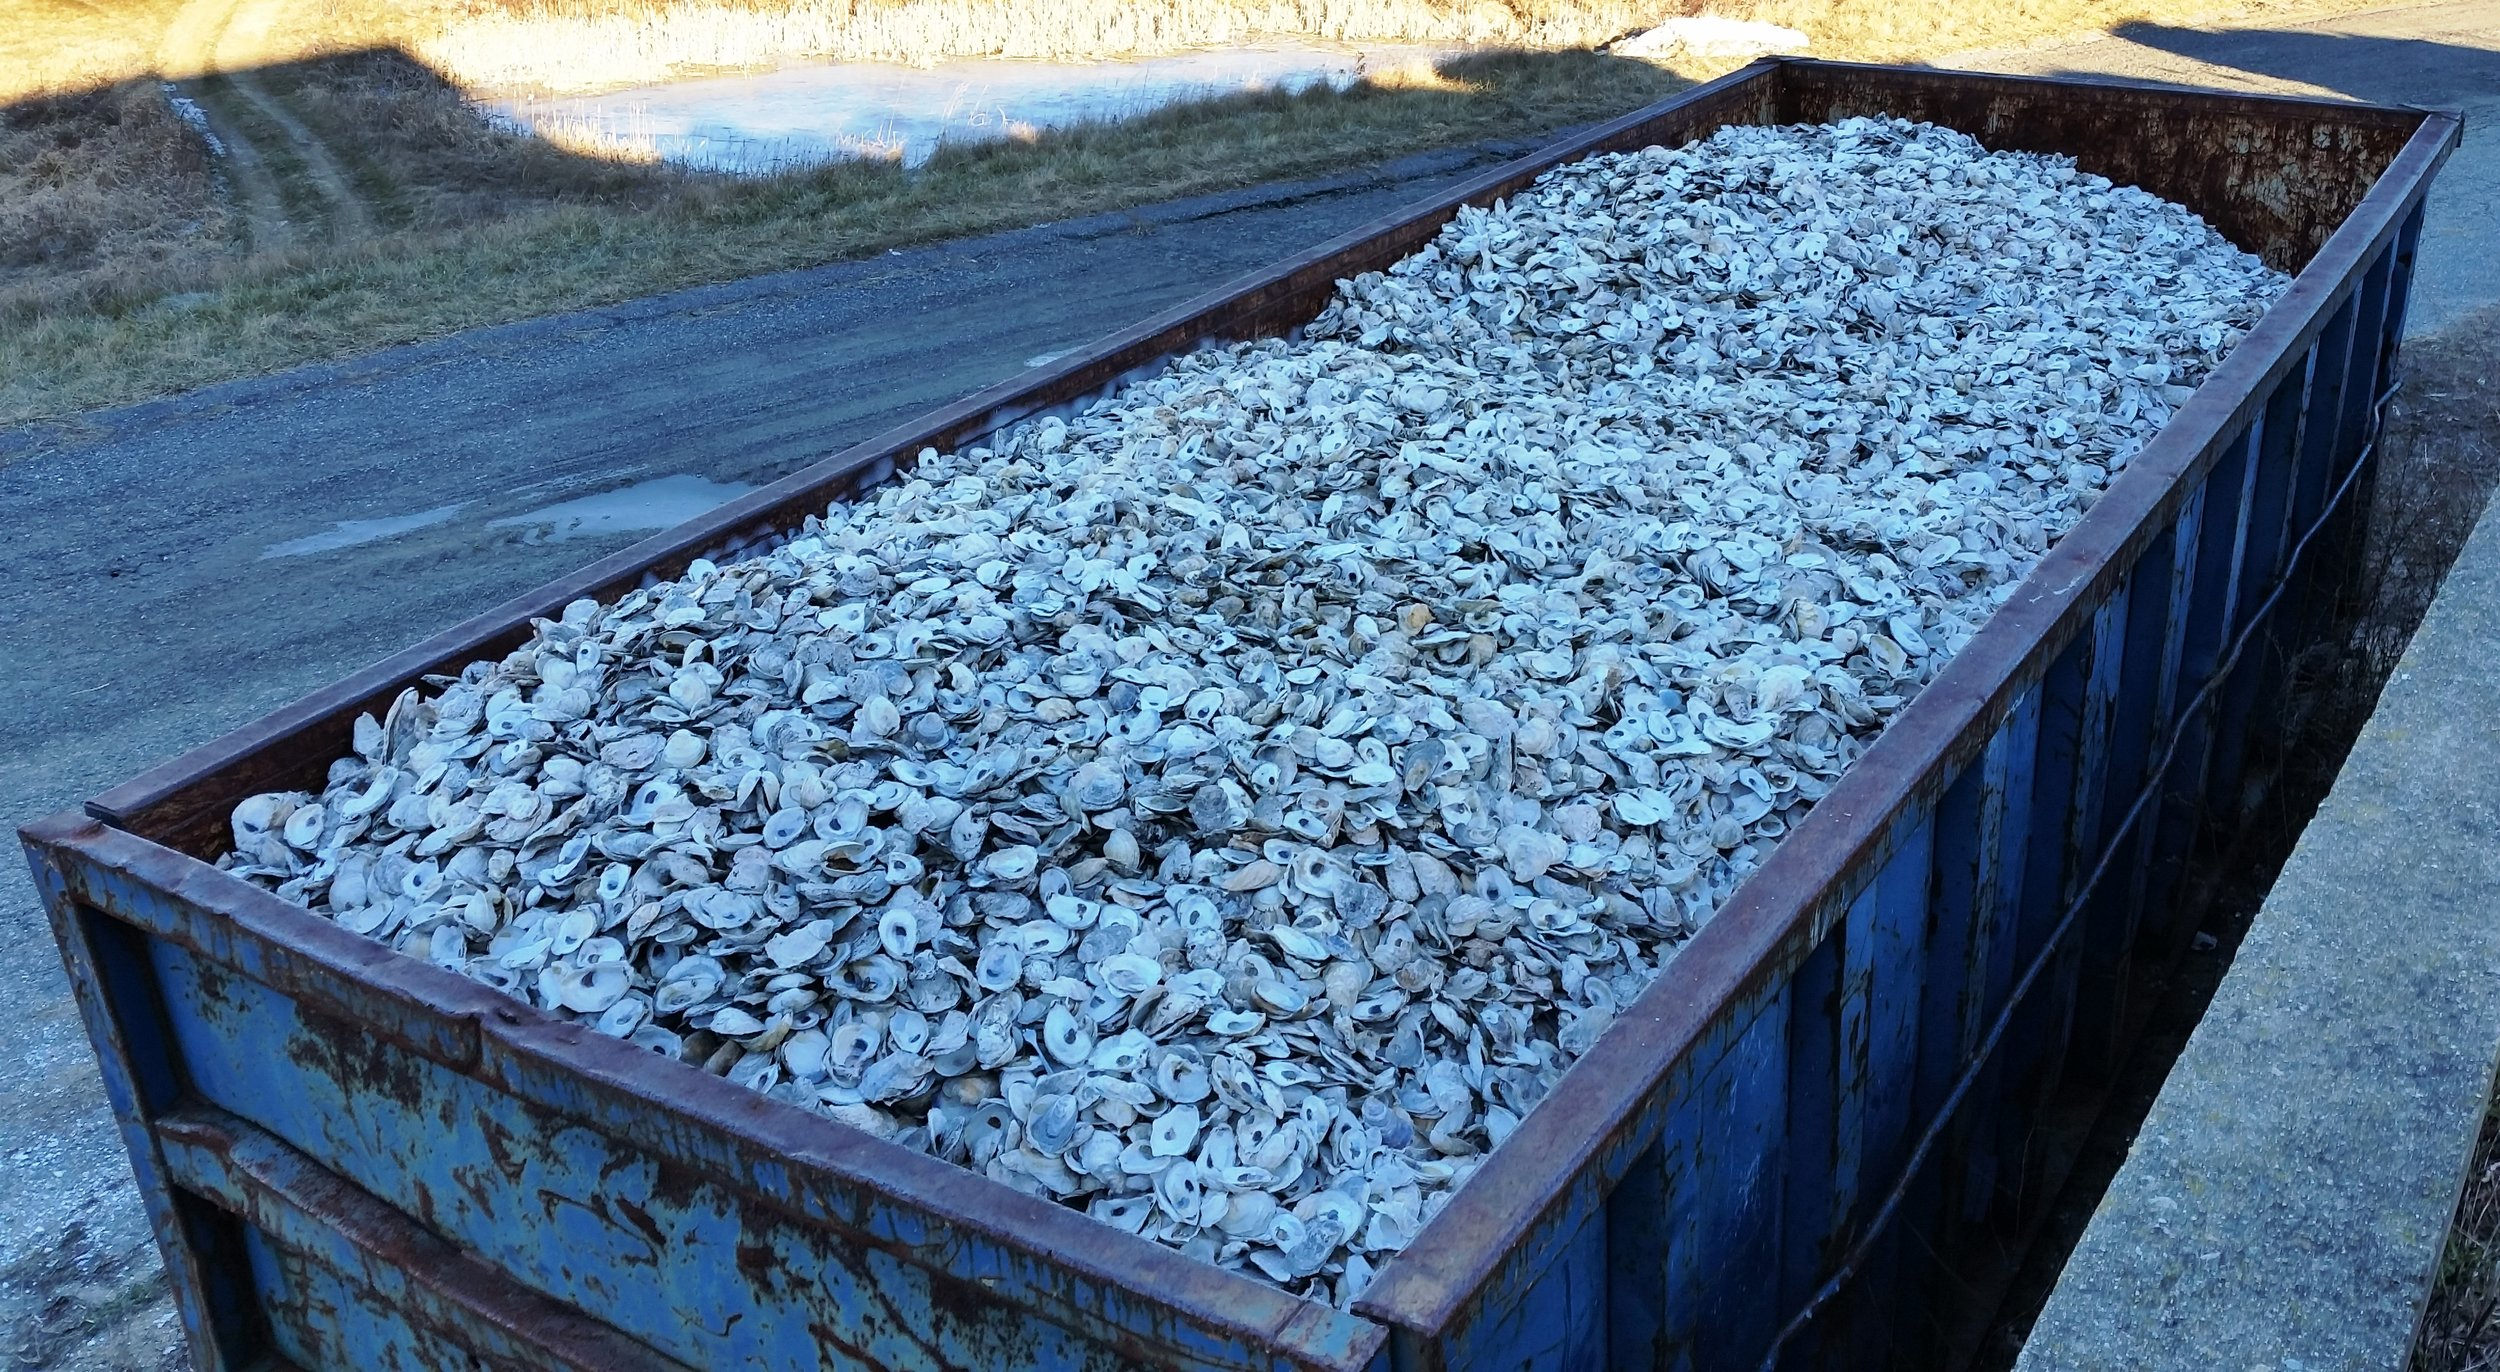 The roll off container supplied by Harding Metals.